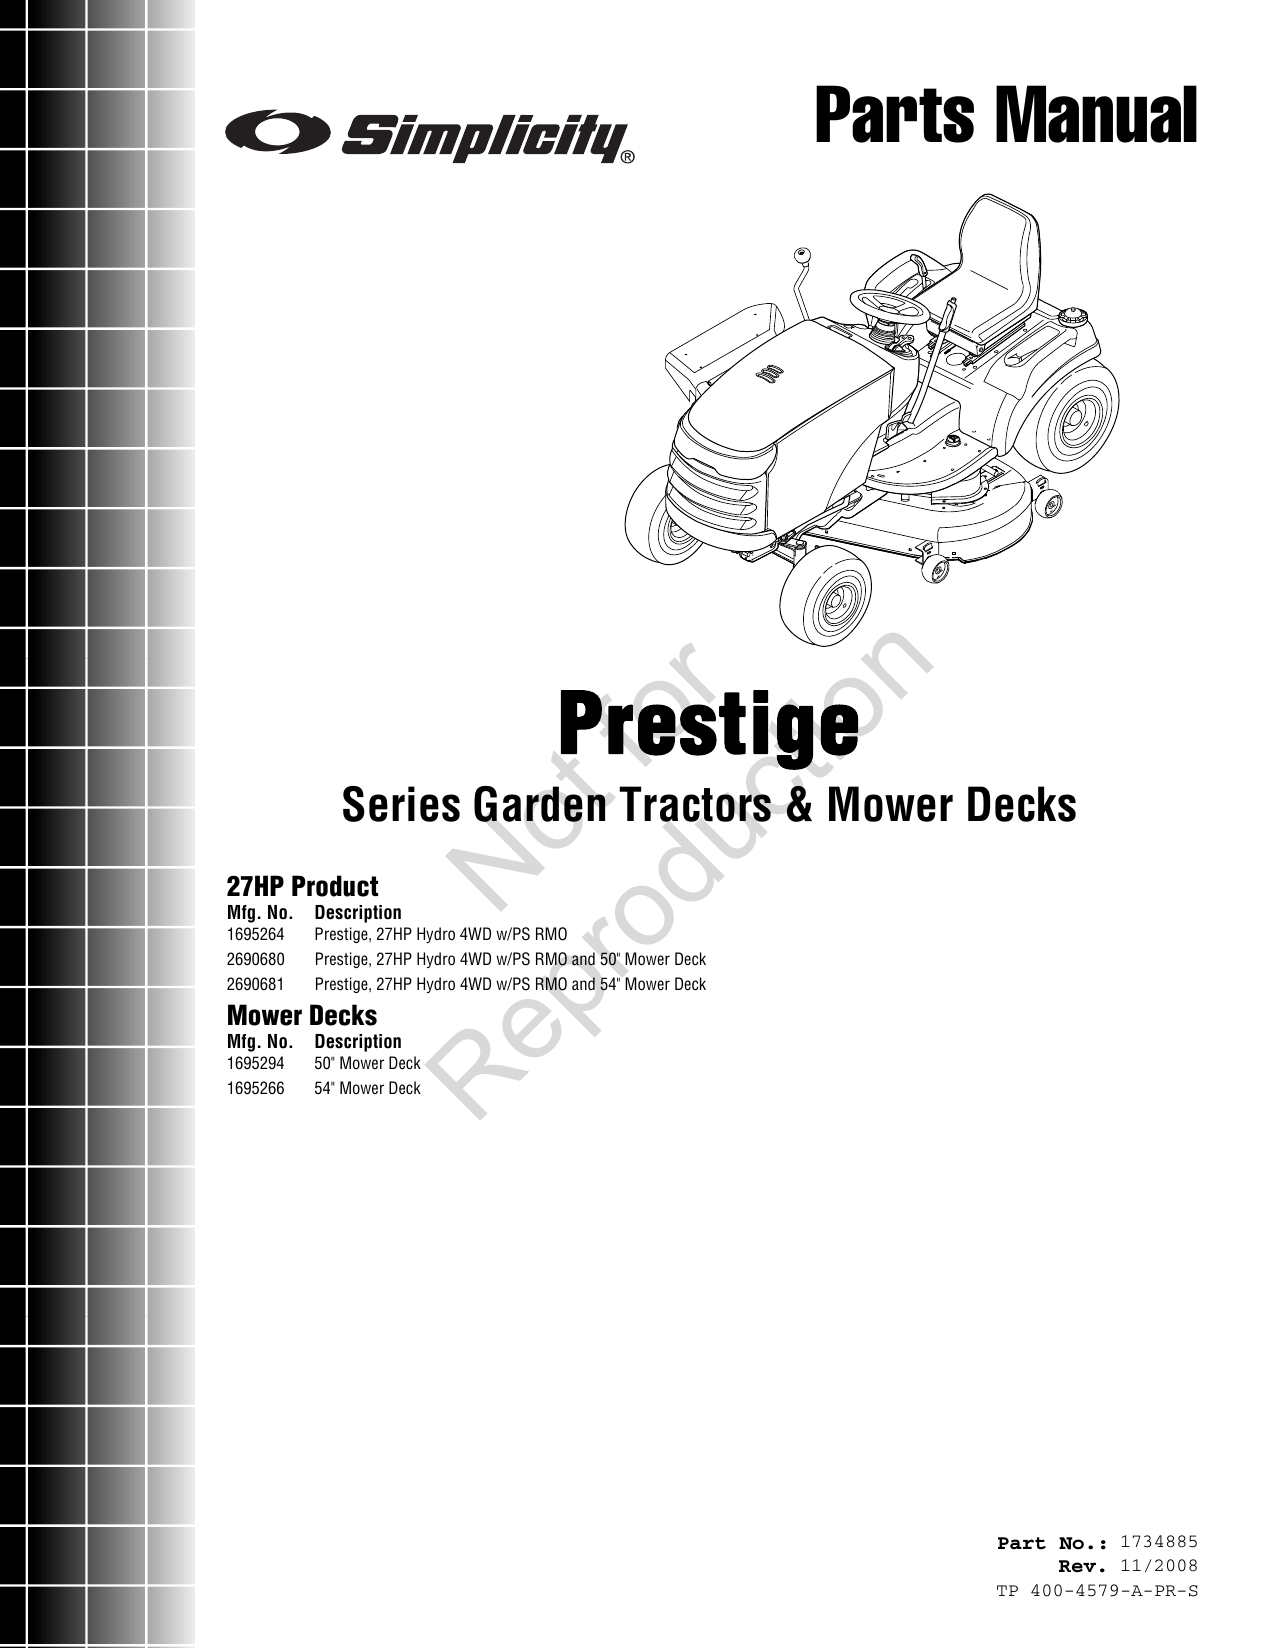 Simplicity Prestige 27Hp Parts Manual Series Garden